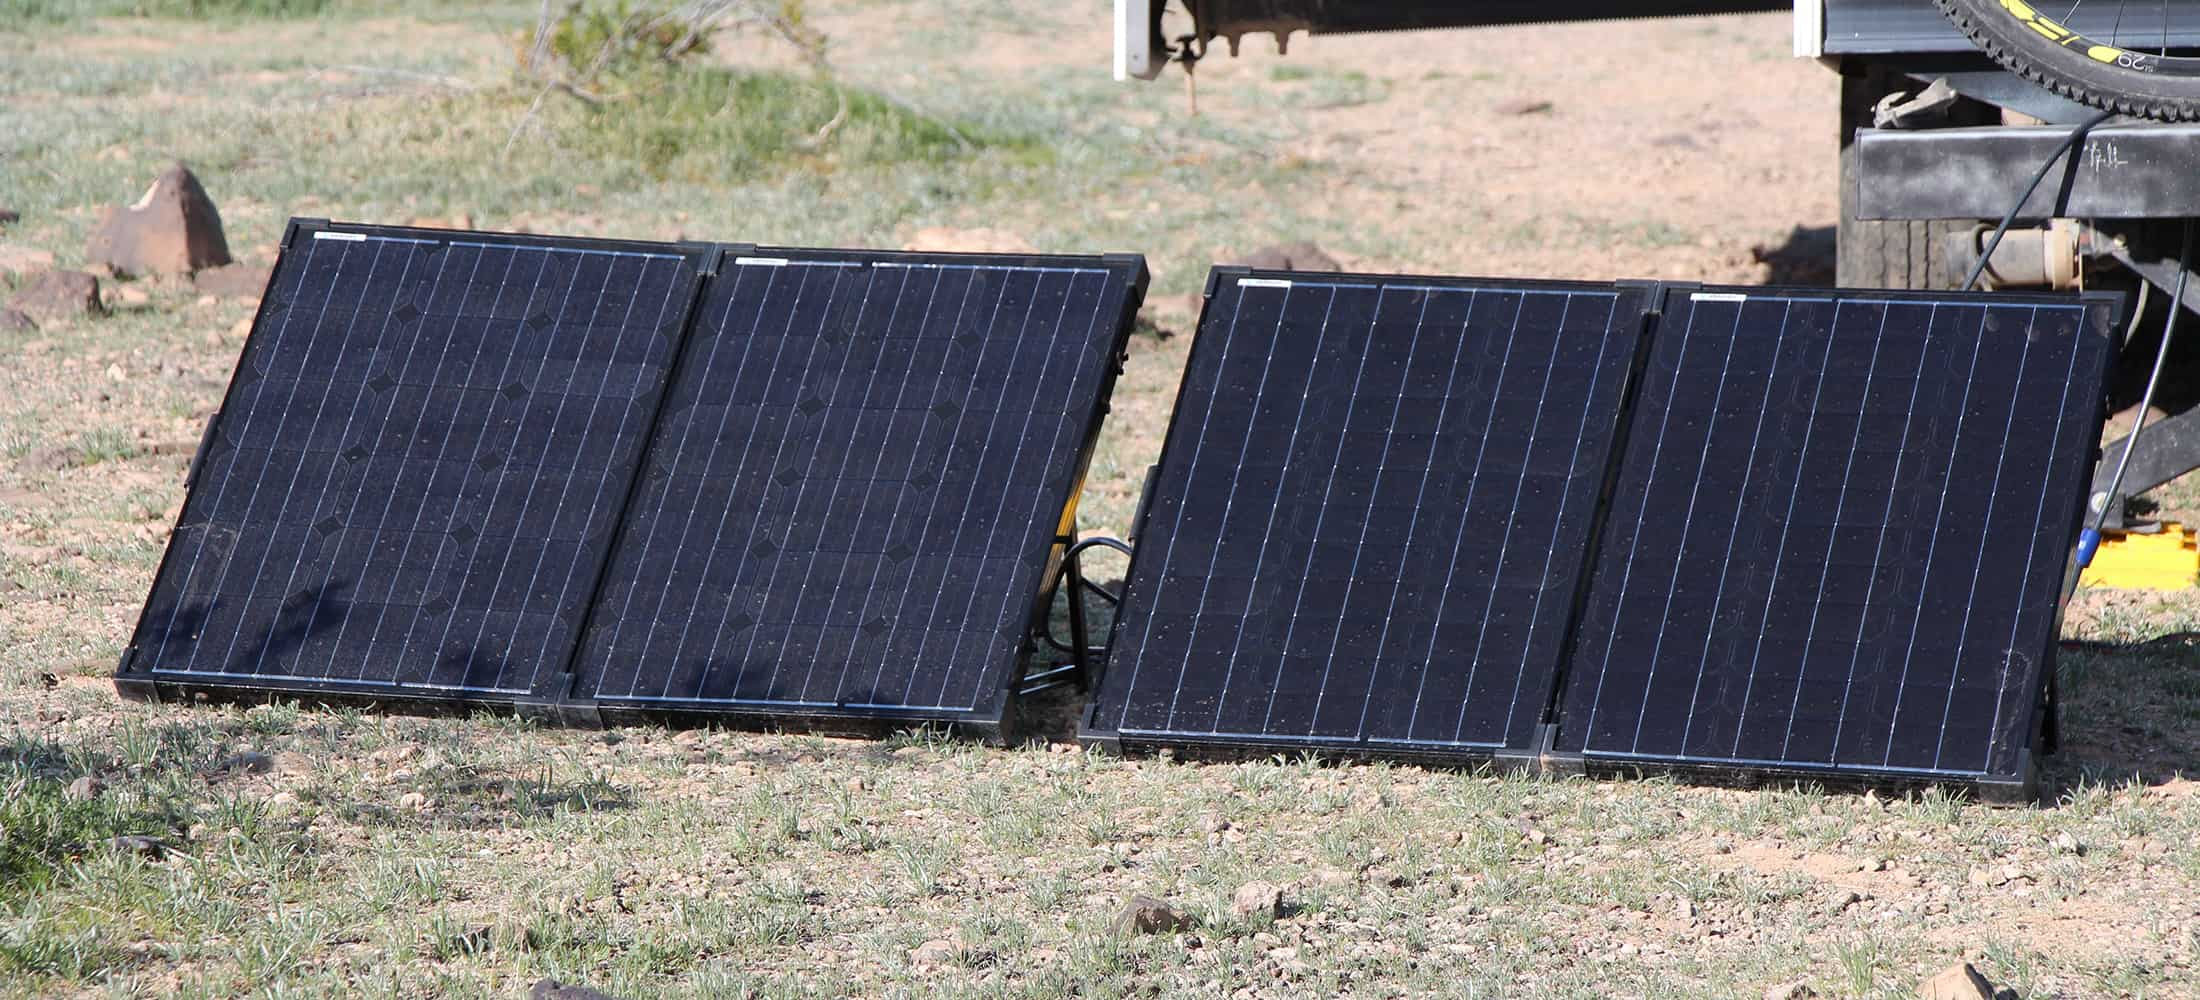 solar-panel-to-charge-rv-battery-when-boondocking-dry-camping-the-solar-addict